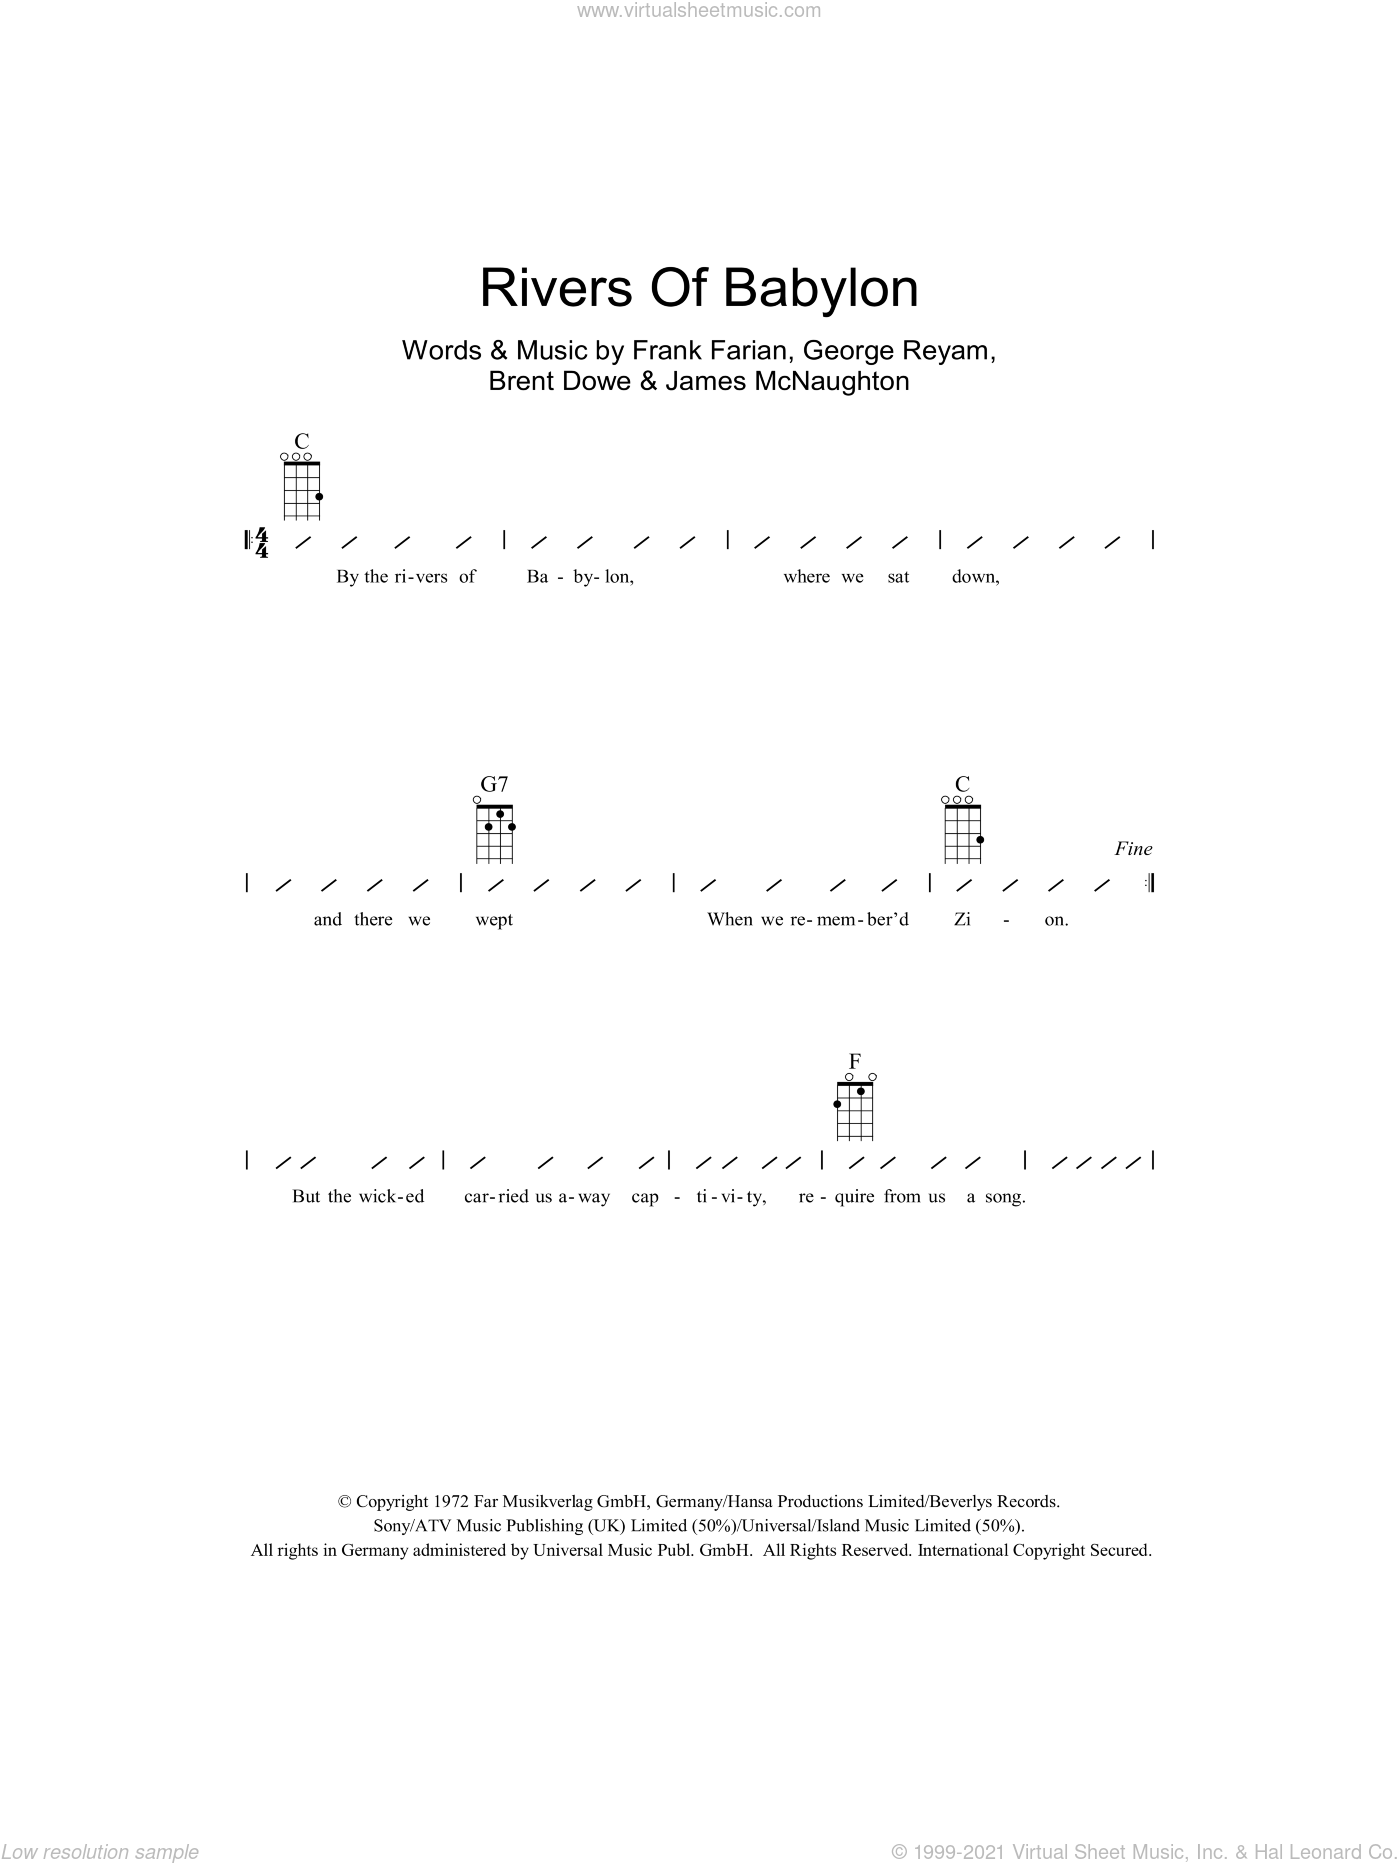 Rivers Of Babylon sheet music for ukulele (chords) by Boney M., The Melodians, Brent Dowe, Frank Farian, George Reyam and James McNaughton, intermediate skill level